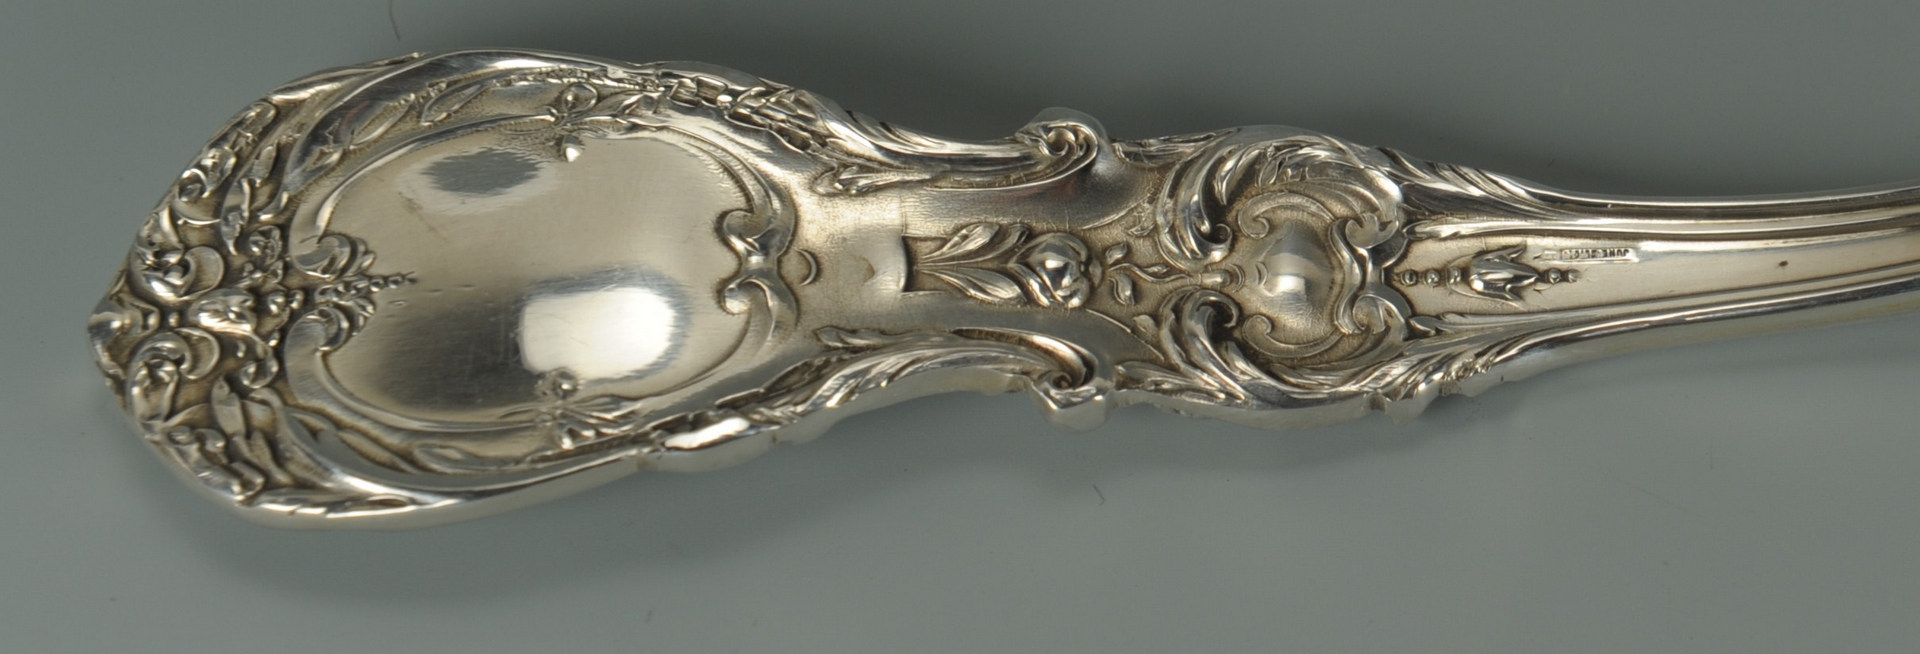 Lot 63: Reed & Barton Francis I Sterling Tray and Ladle